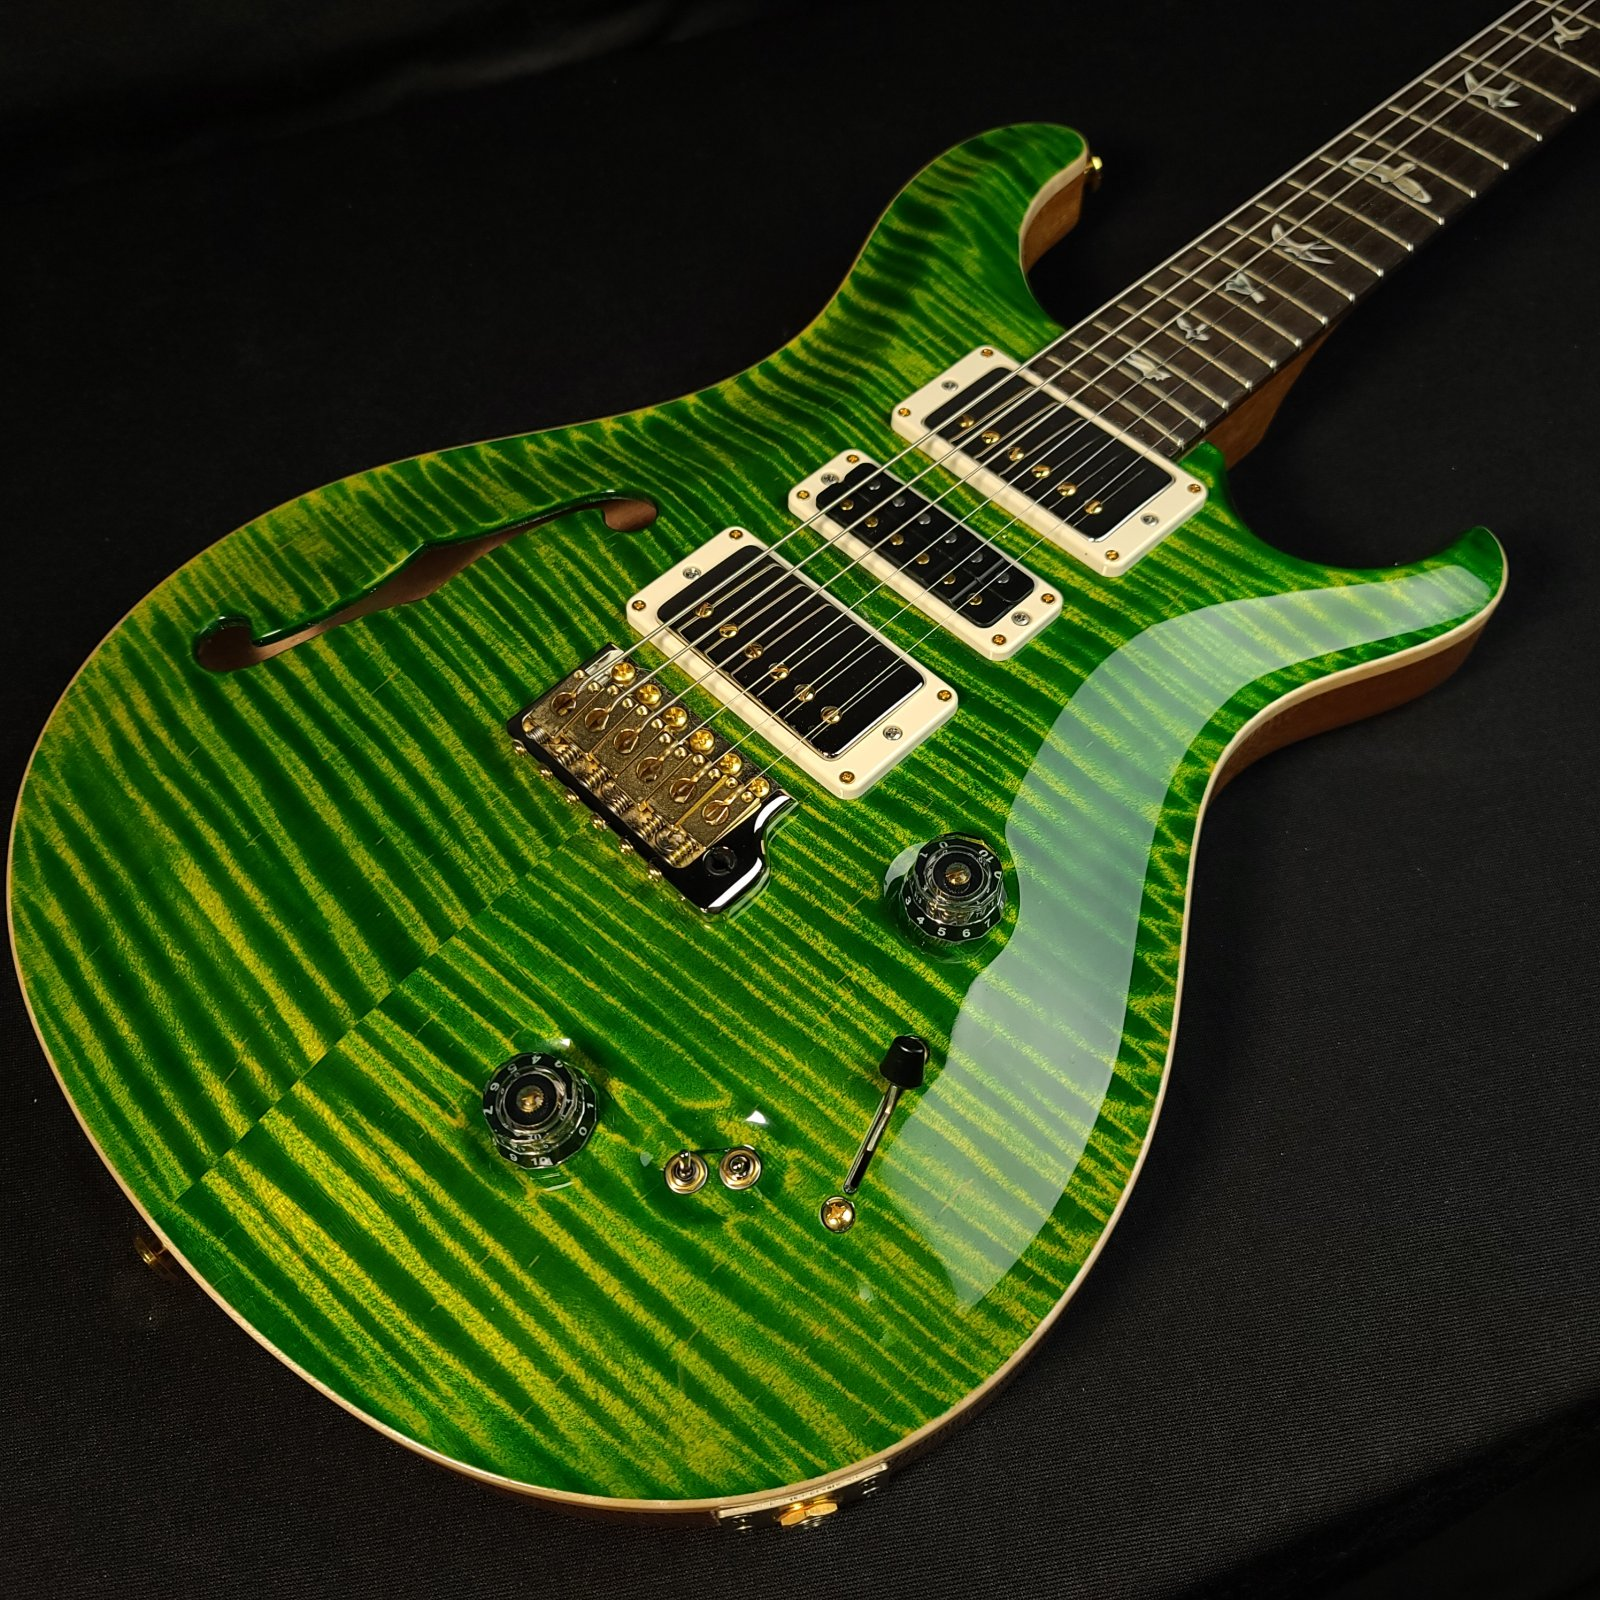 USED Paul Reed Smith PRS Special 22 Semi-Hollow LE Emerald 10 Top w/ Original Case